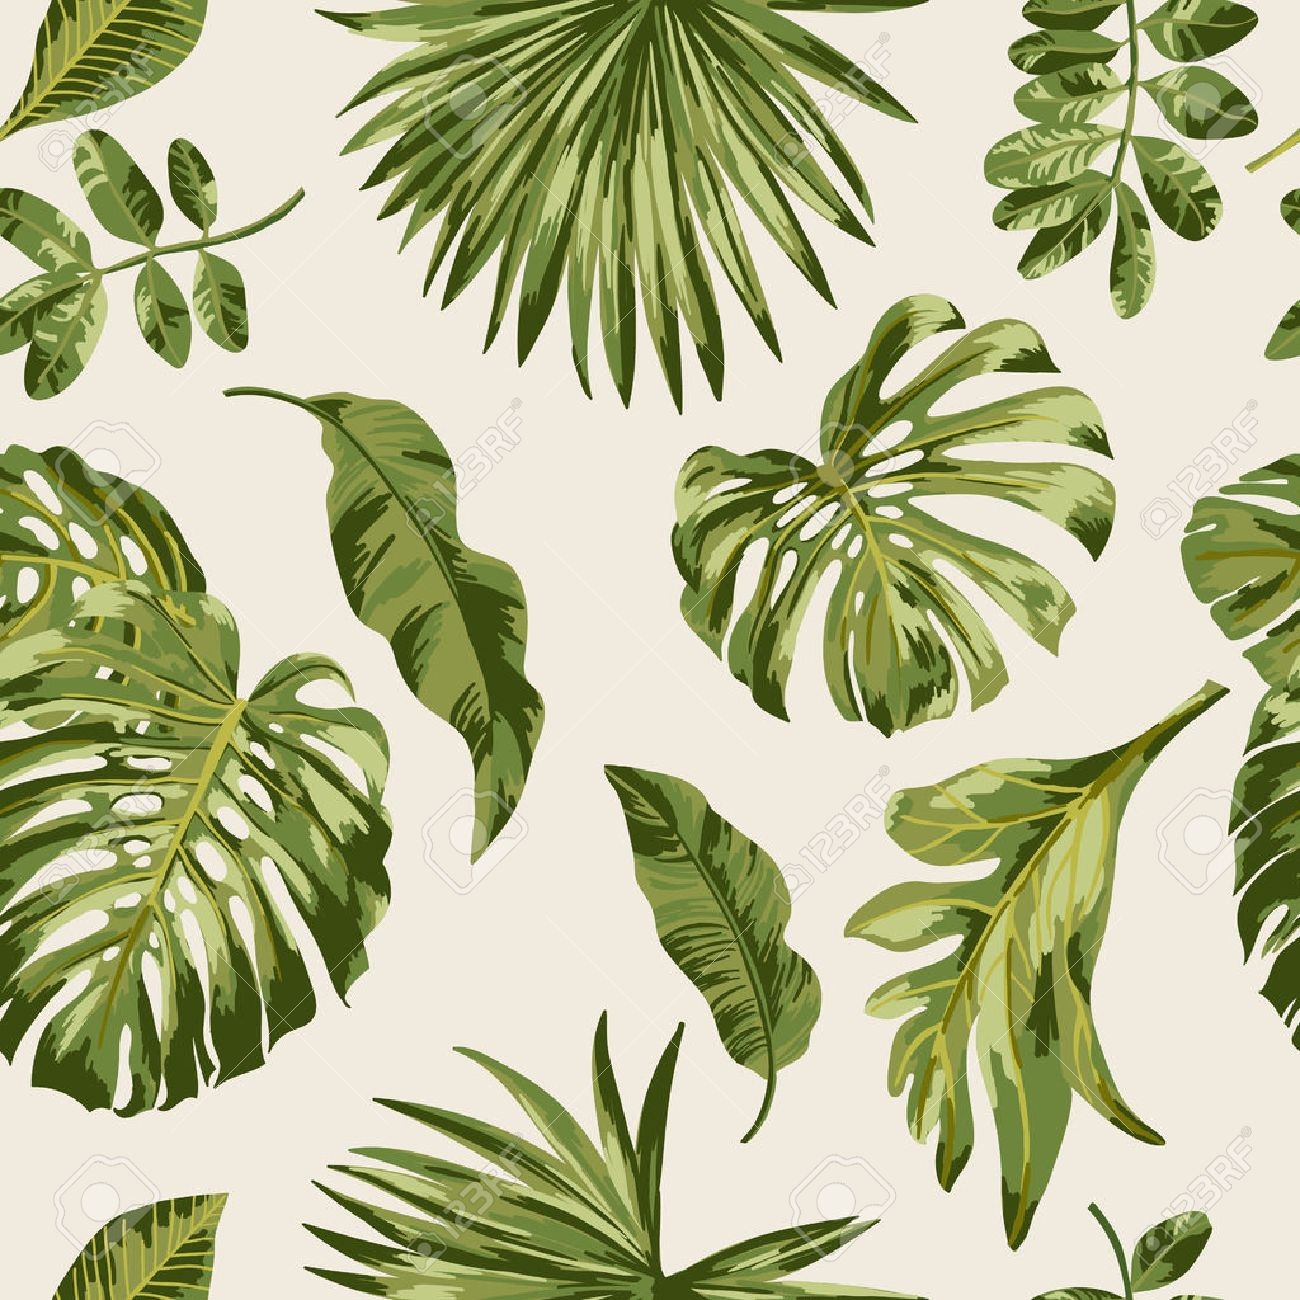 Seamless Exotic Pattern With Tropical Leaves On A White Background Royalty Free Cliparts Vectors And Stock Illustration Image 56800082 Use this customizable tropical happiness zoom virtual background template and find more professional designs from canva. seamless exotic pattern with tropical leaves on a white background